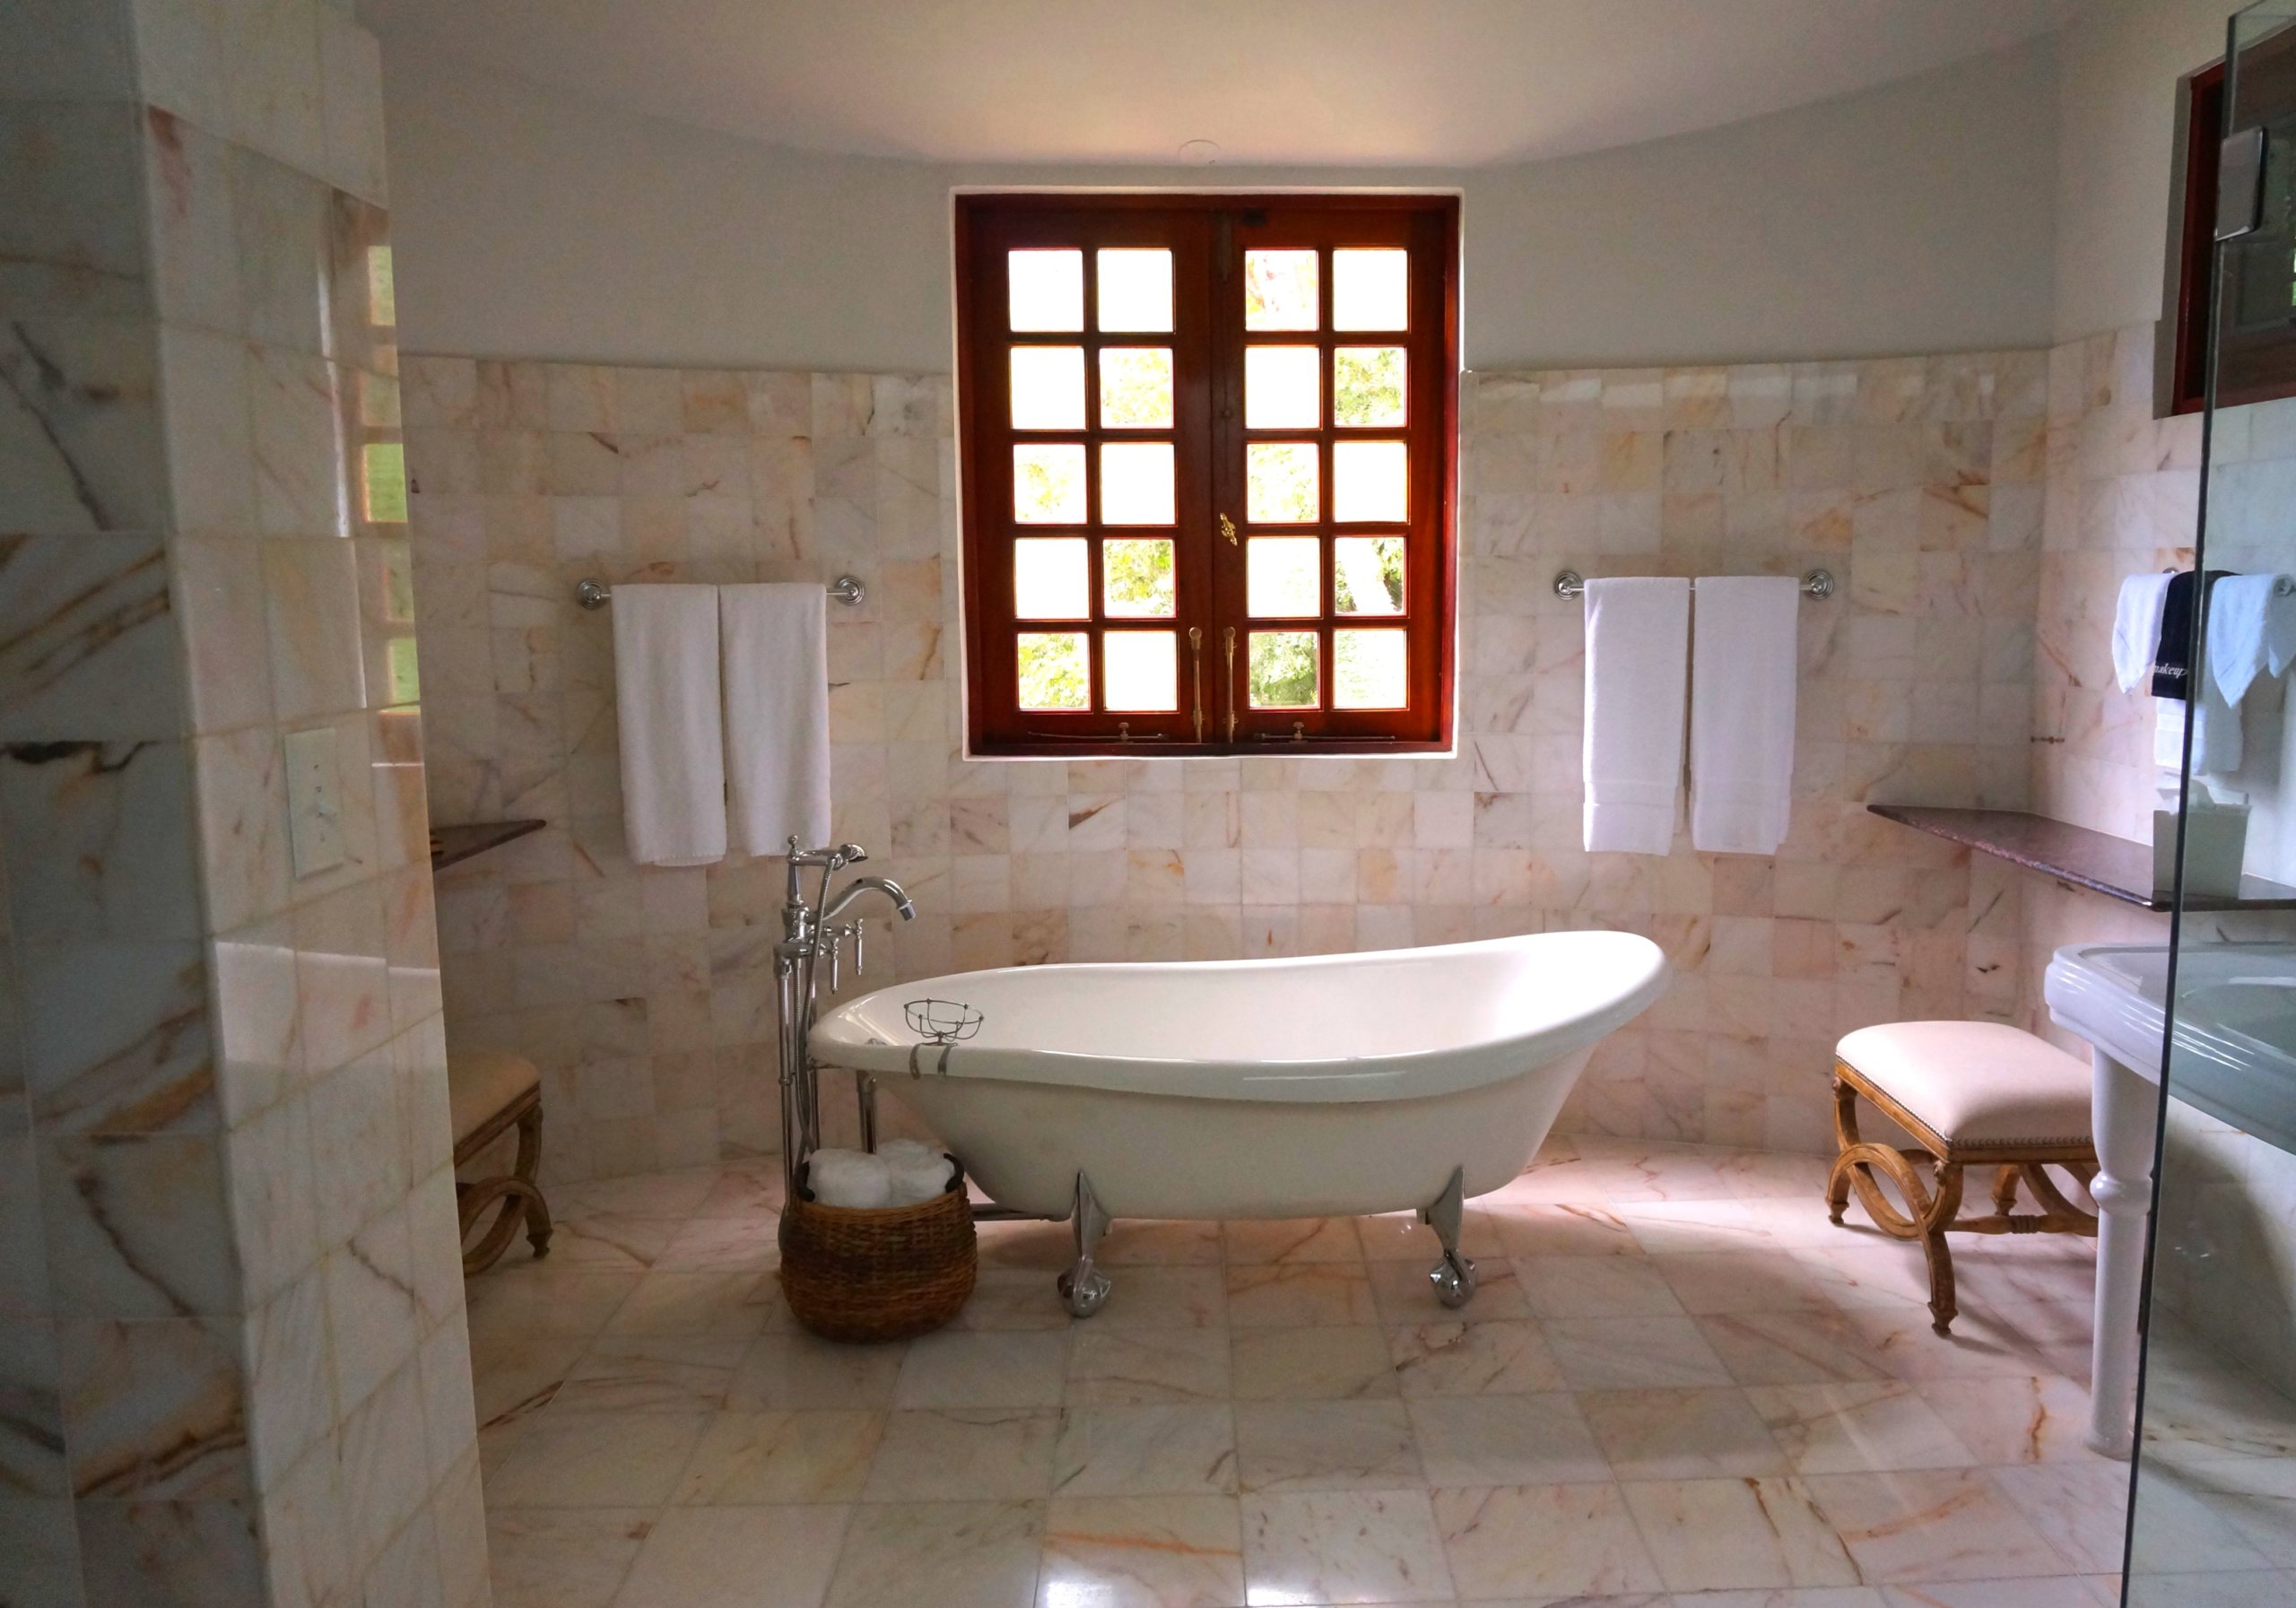 White bathtub in front of closed window